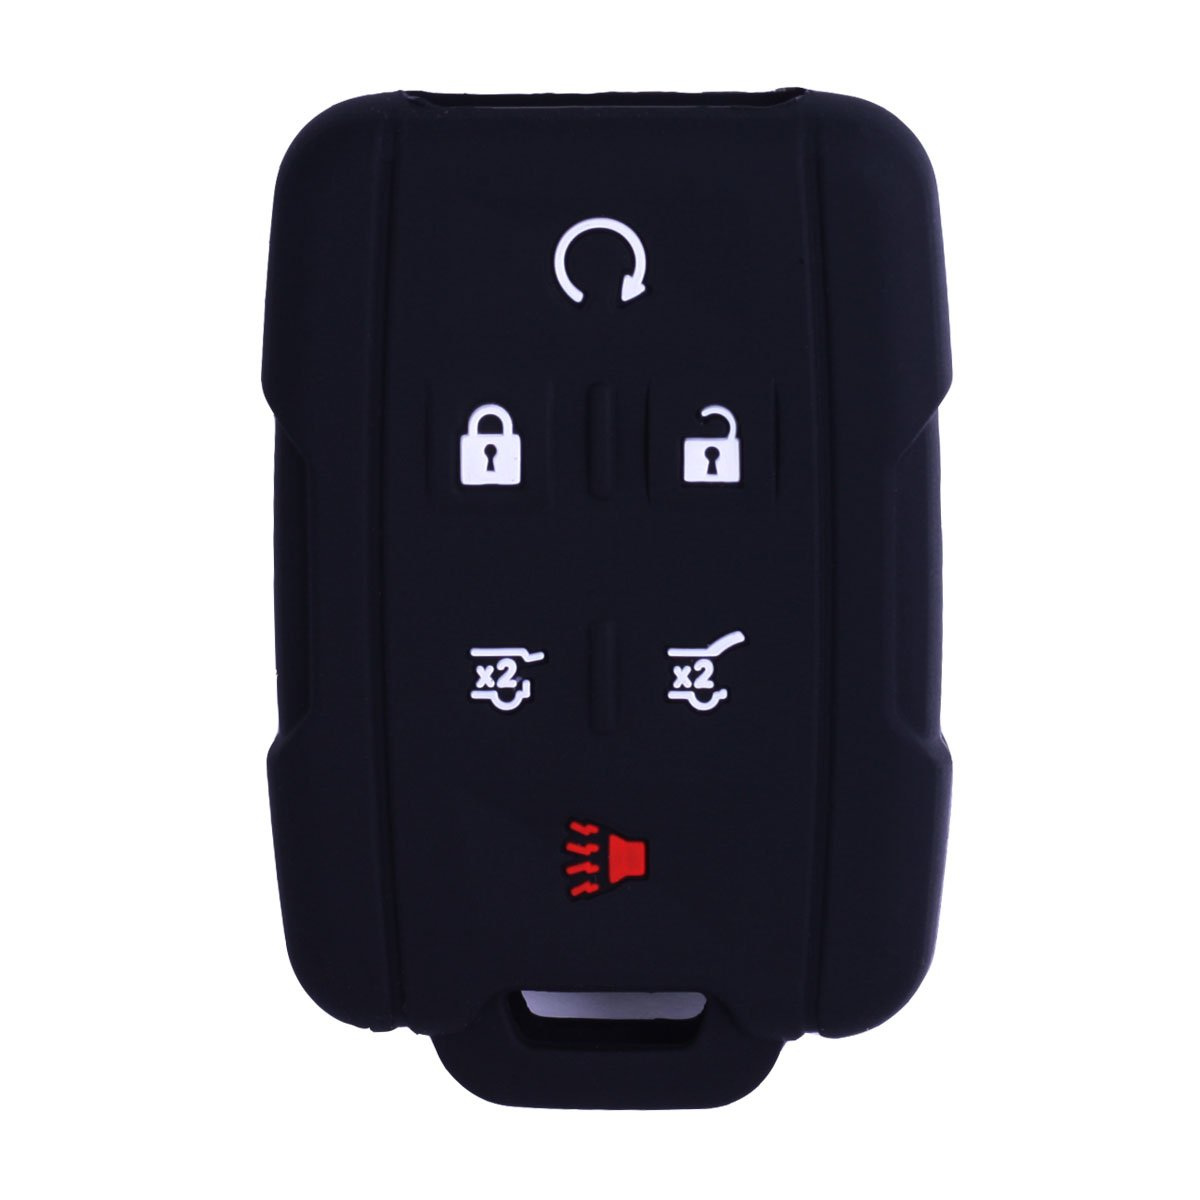 WERFDSR Sillicone key fob Skin key Cover Remote Case Protector Shell for 2015 2016 Chevrolet Suburban Tahoe GMC Yukon Smart Remote blue